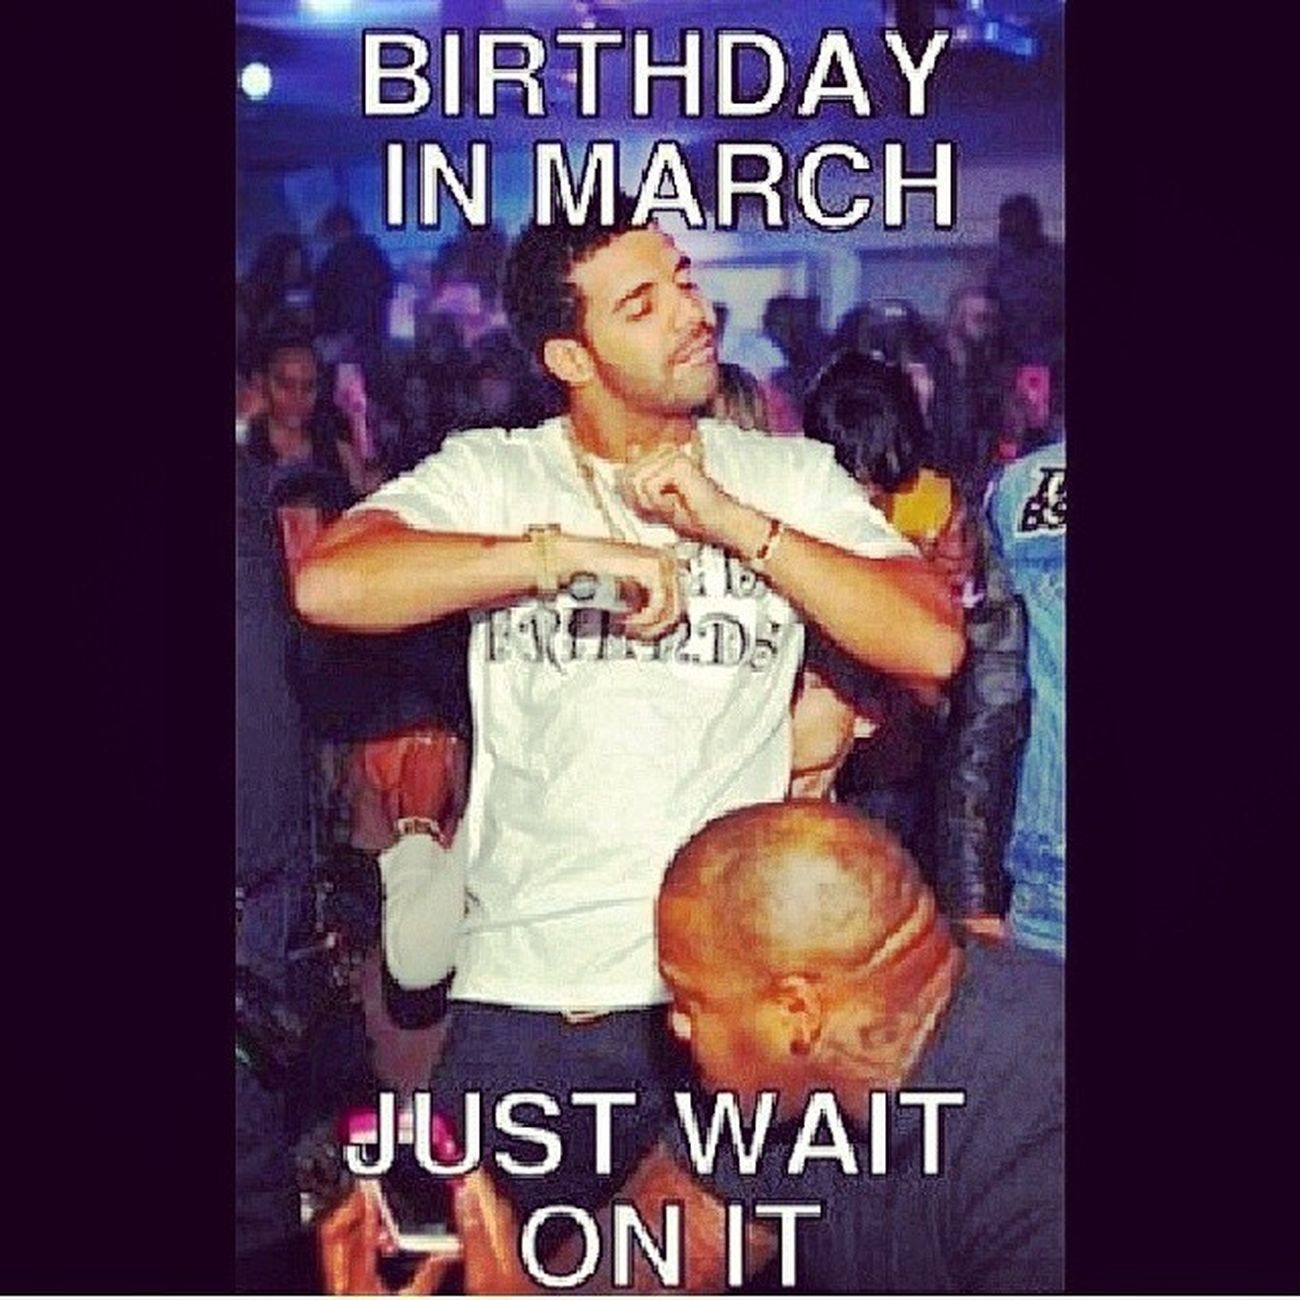 Hell yeah Boii can't wait on it March7 WeAboutToGetTurnUp Letsparty